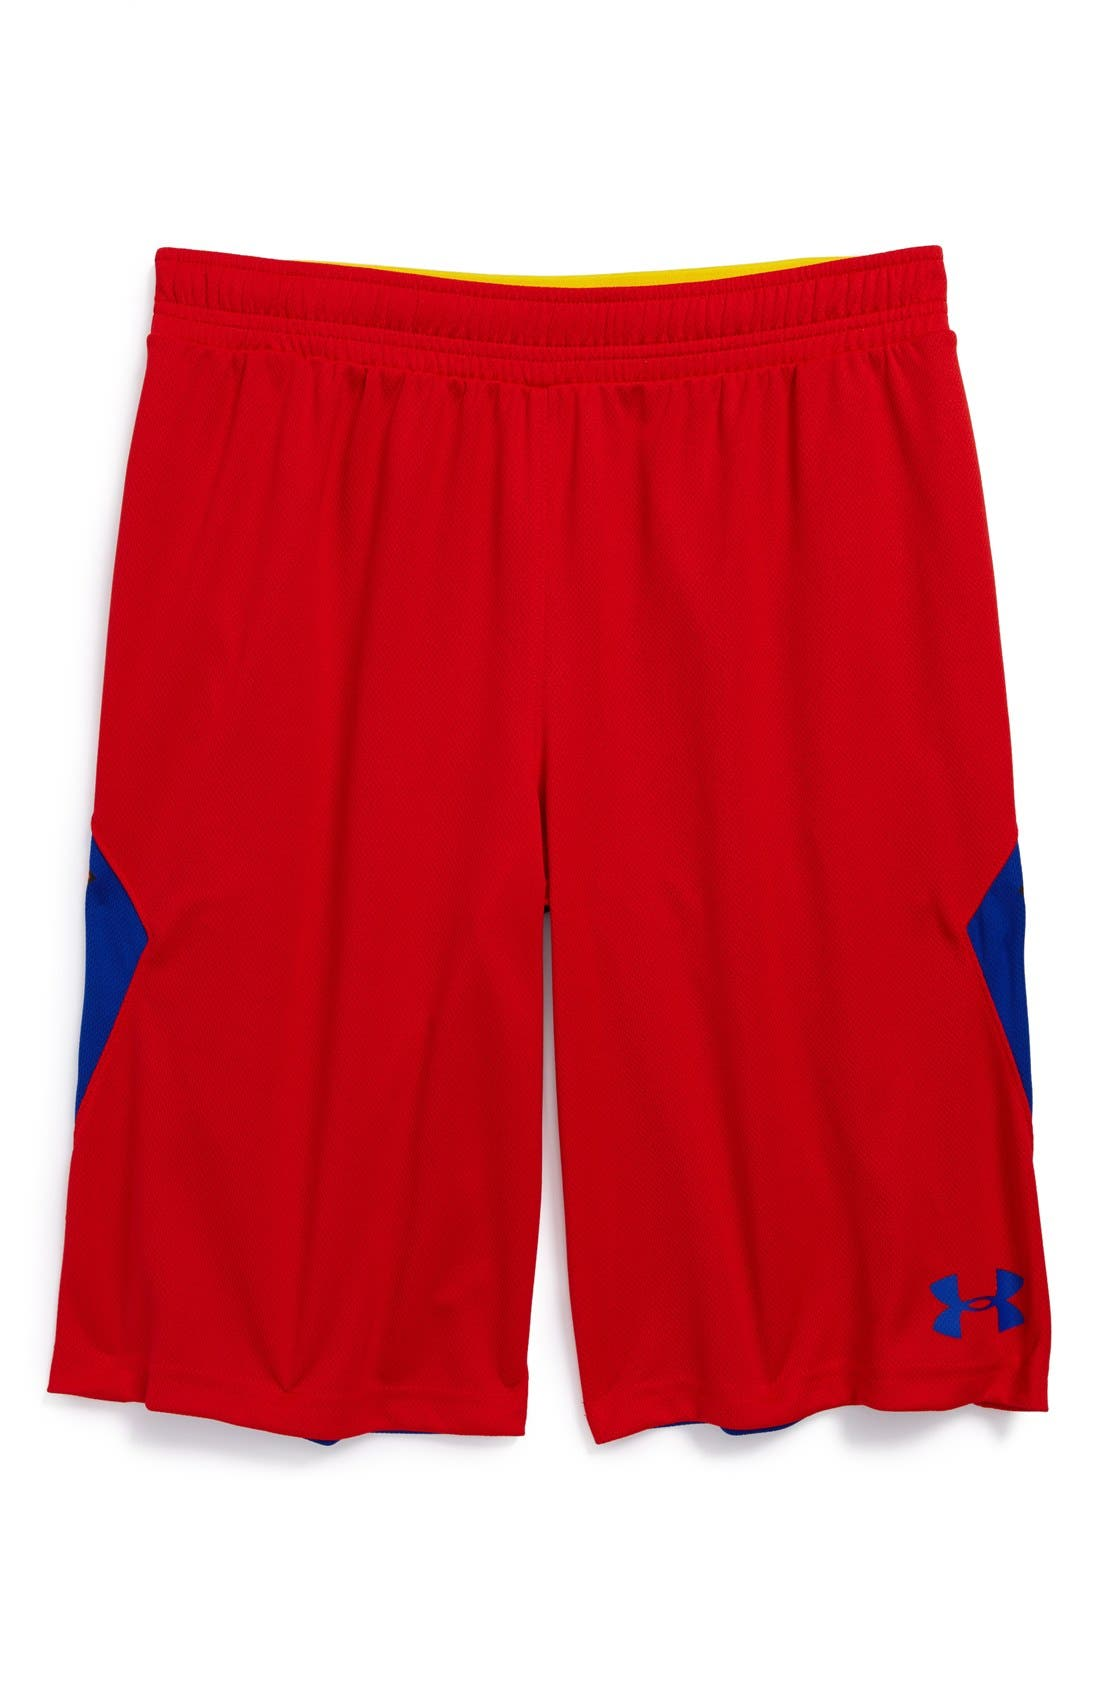 Alternate Image 2  - Under Armour 'Alter Ego - Superman' Shorts (Little Boys & Big Boys)